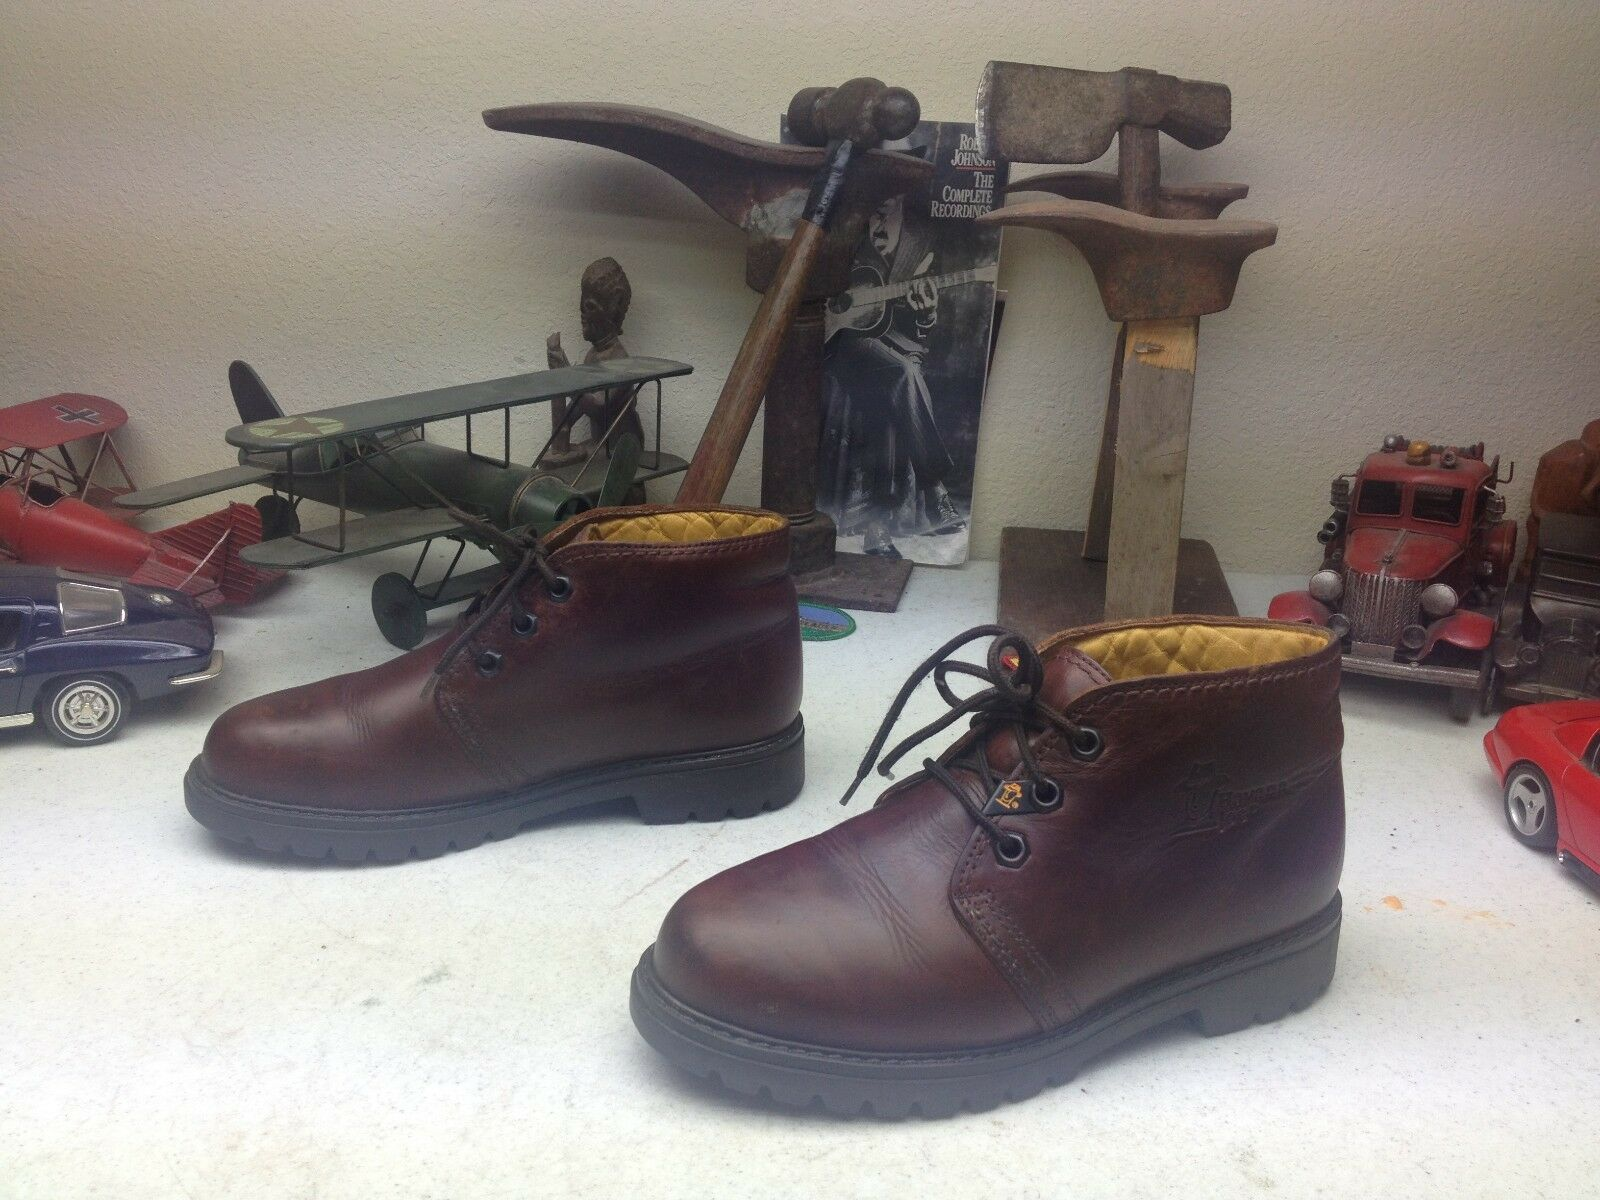 SPAIN HAVANA JOE BROWN LEATHER LACE UP DISTRESSED ANKLE BOOTS 38